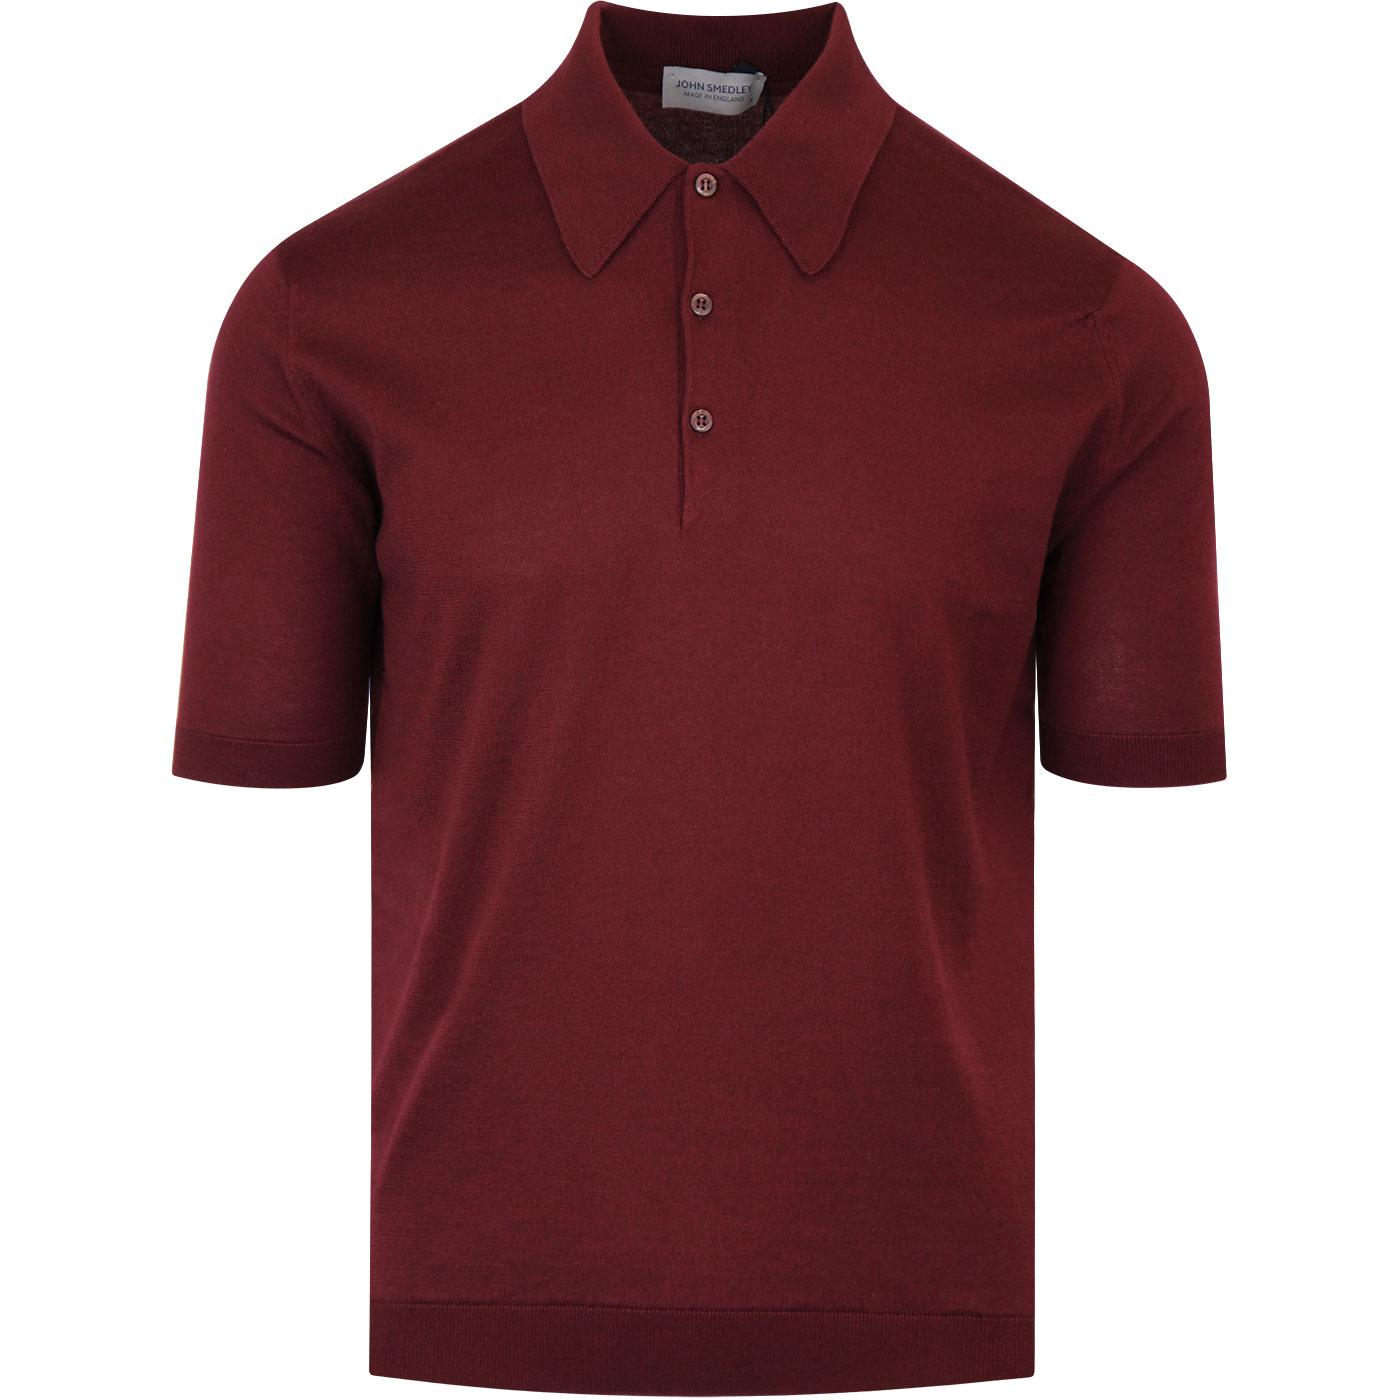 Isis JOHN SMEDLEY Easy Fit Mod Knit Polo BORDEAUX